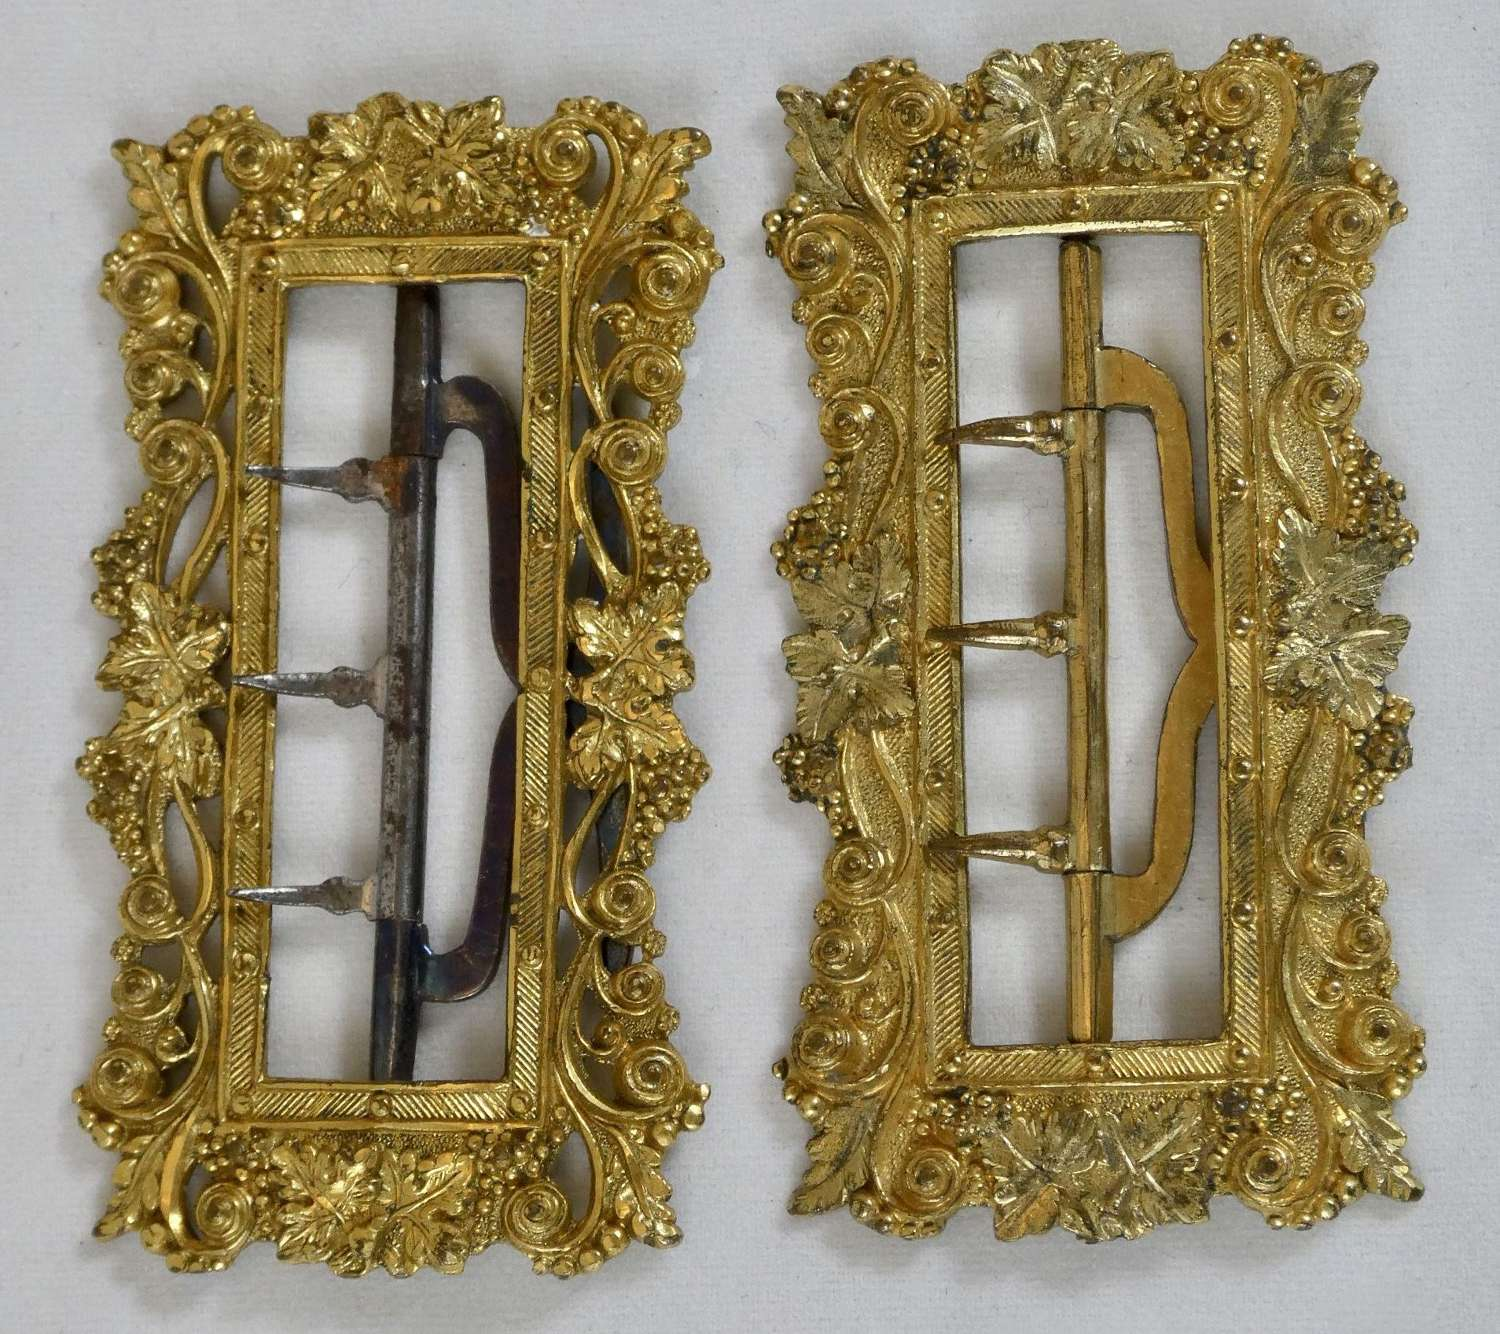 Pair of Gilt Buckles